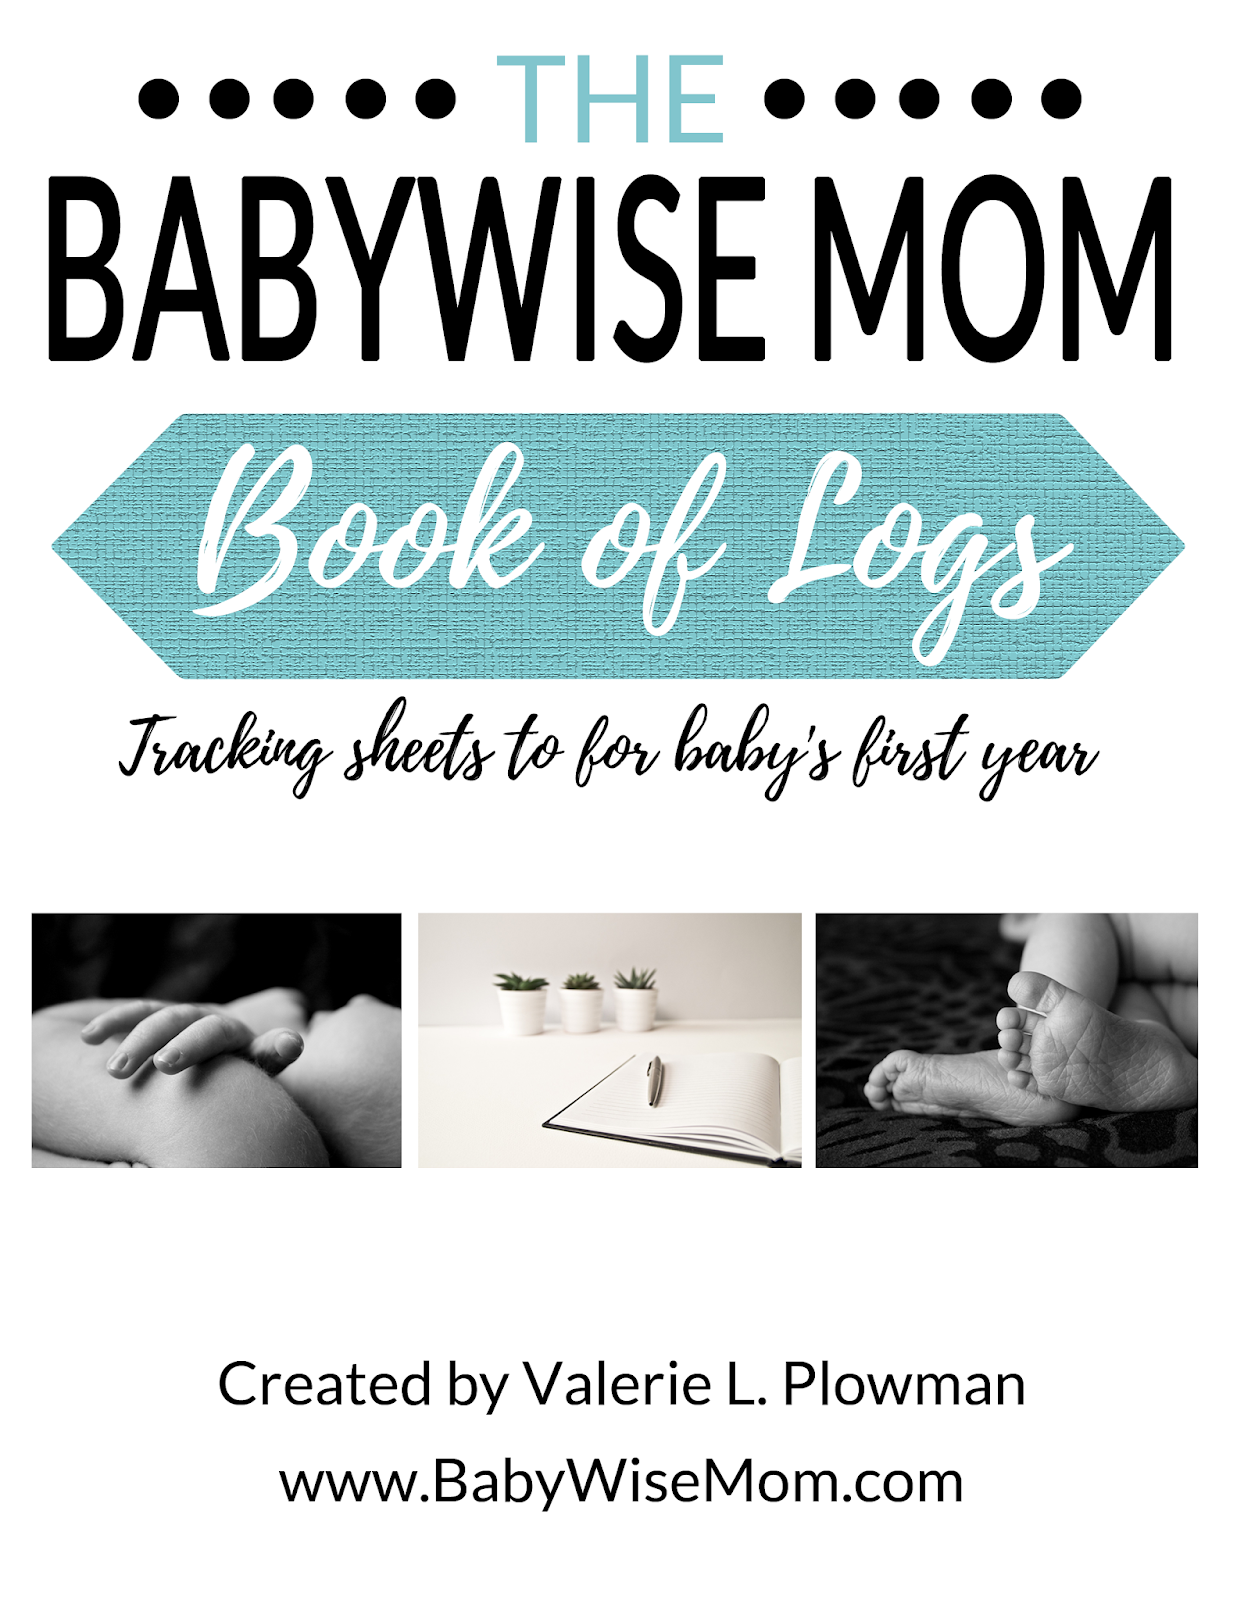 The Babywise Mom Book of Logs